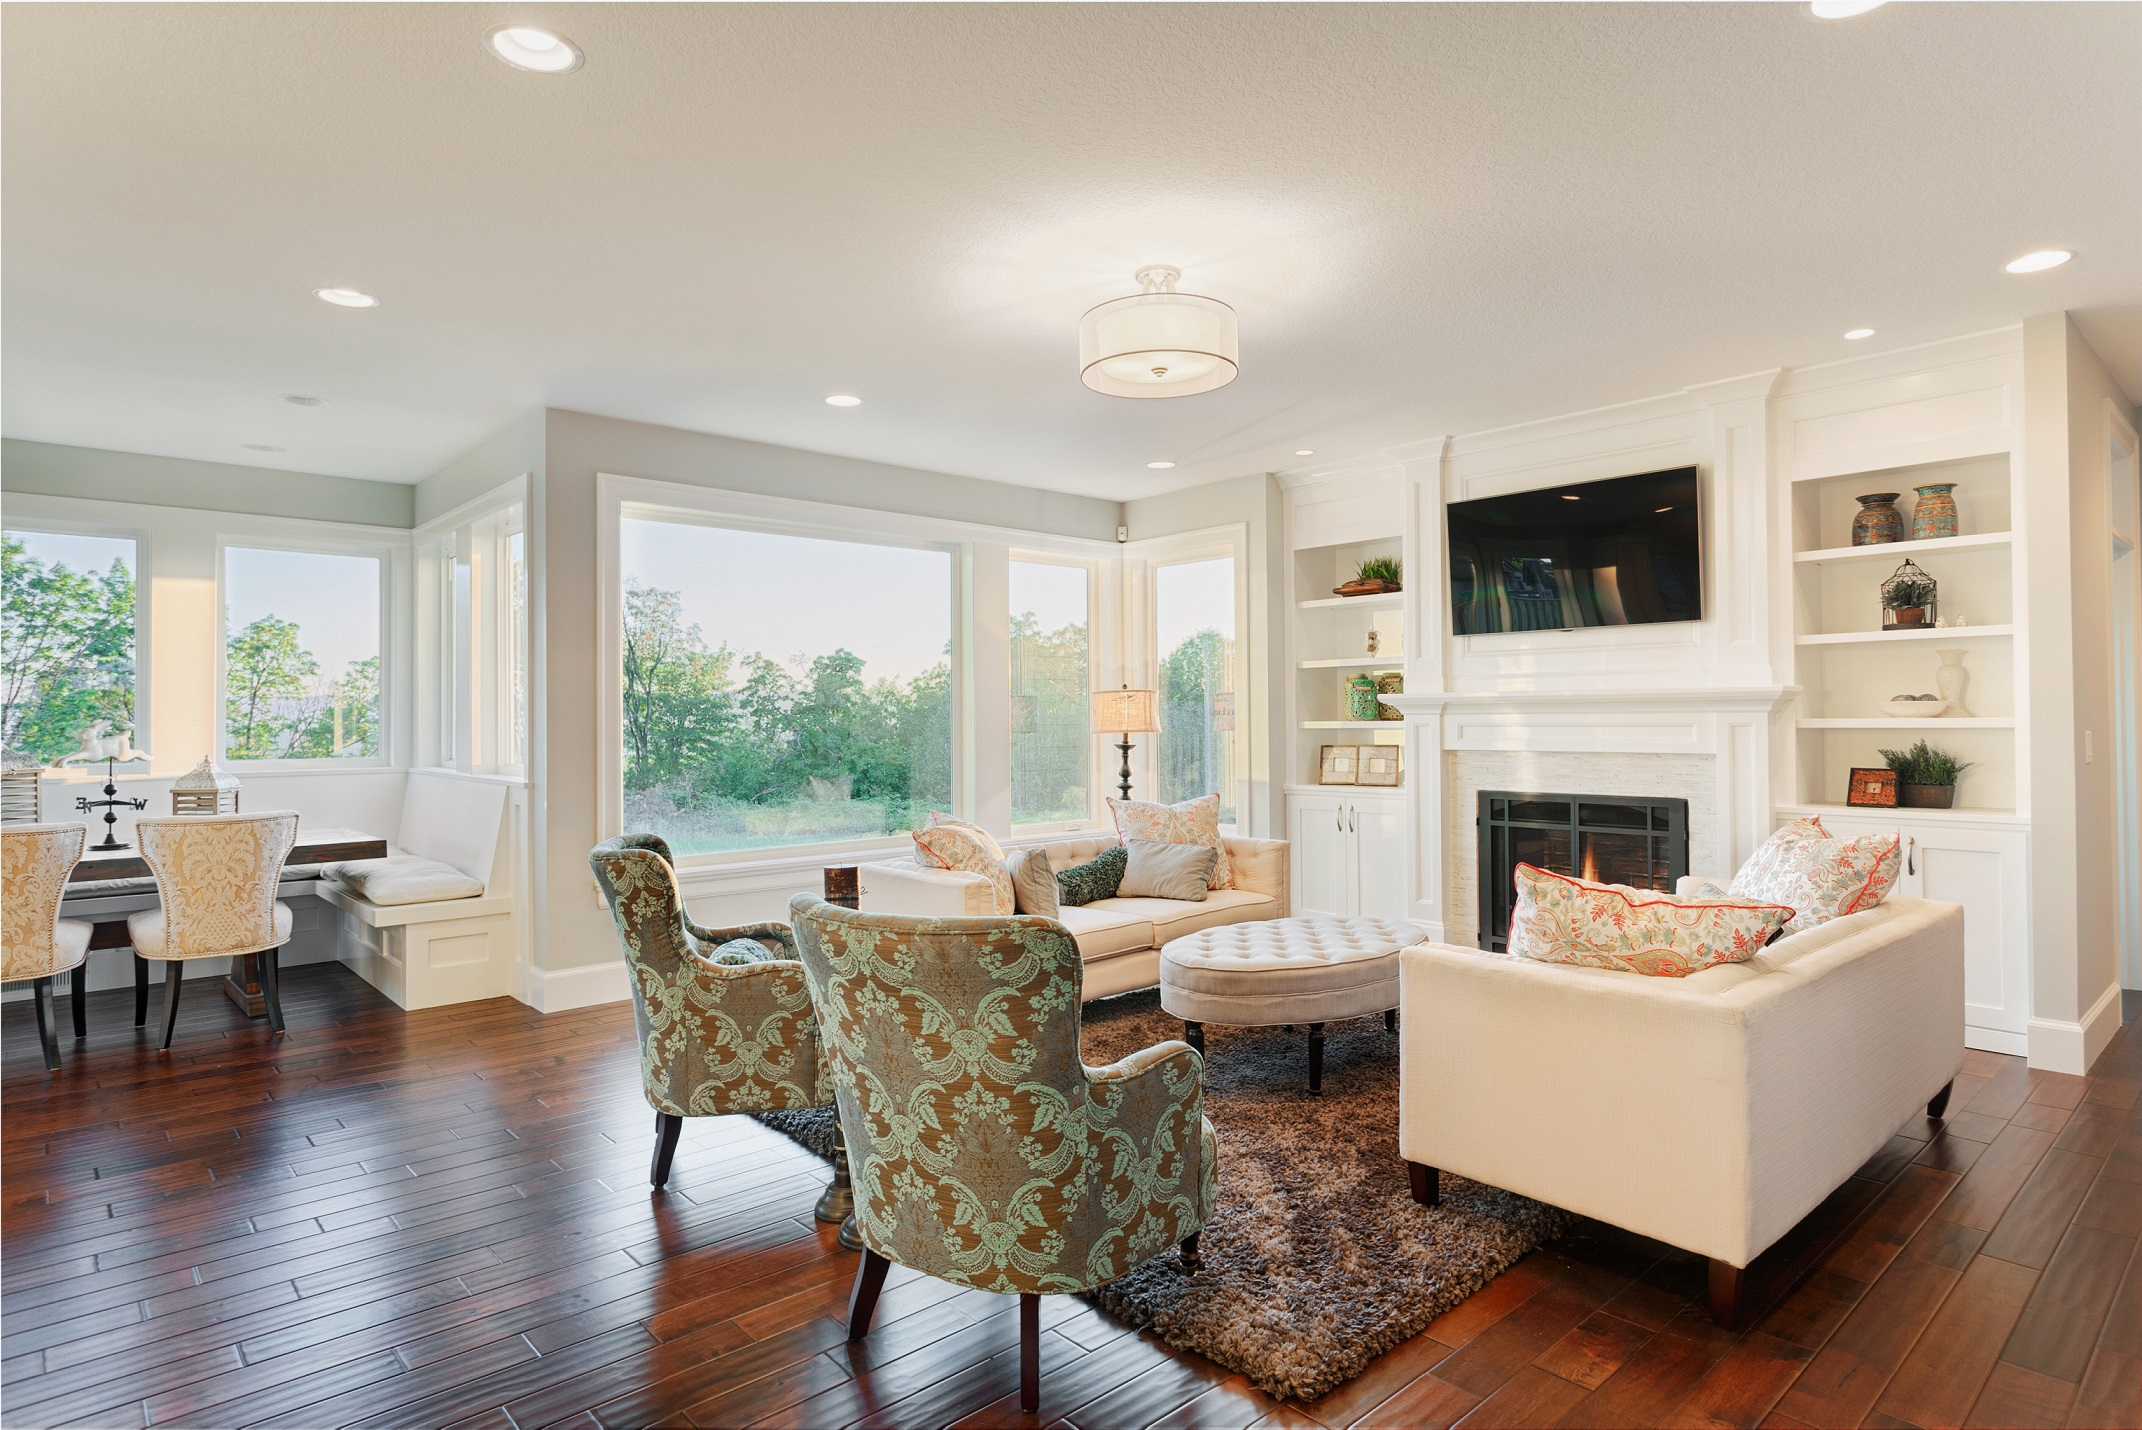 Five Interior Design Trends That Turn Off Home Buyers Shorewest Latest News Our Blog